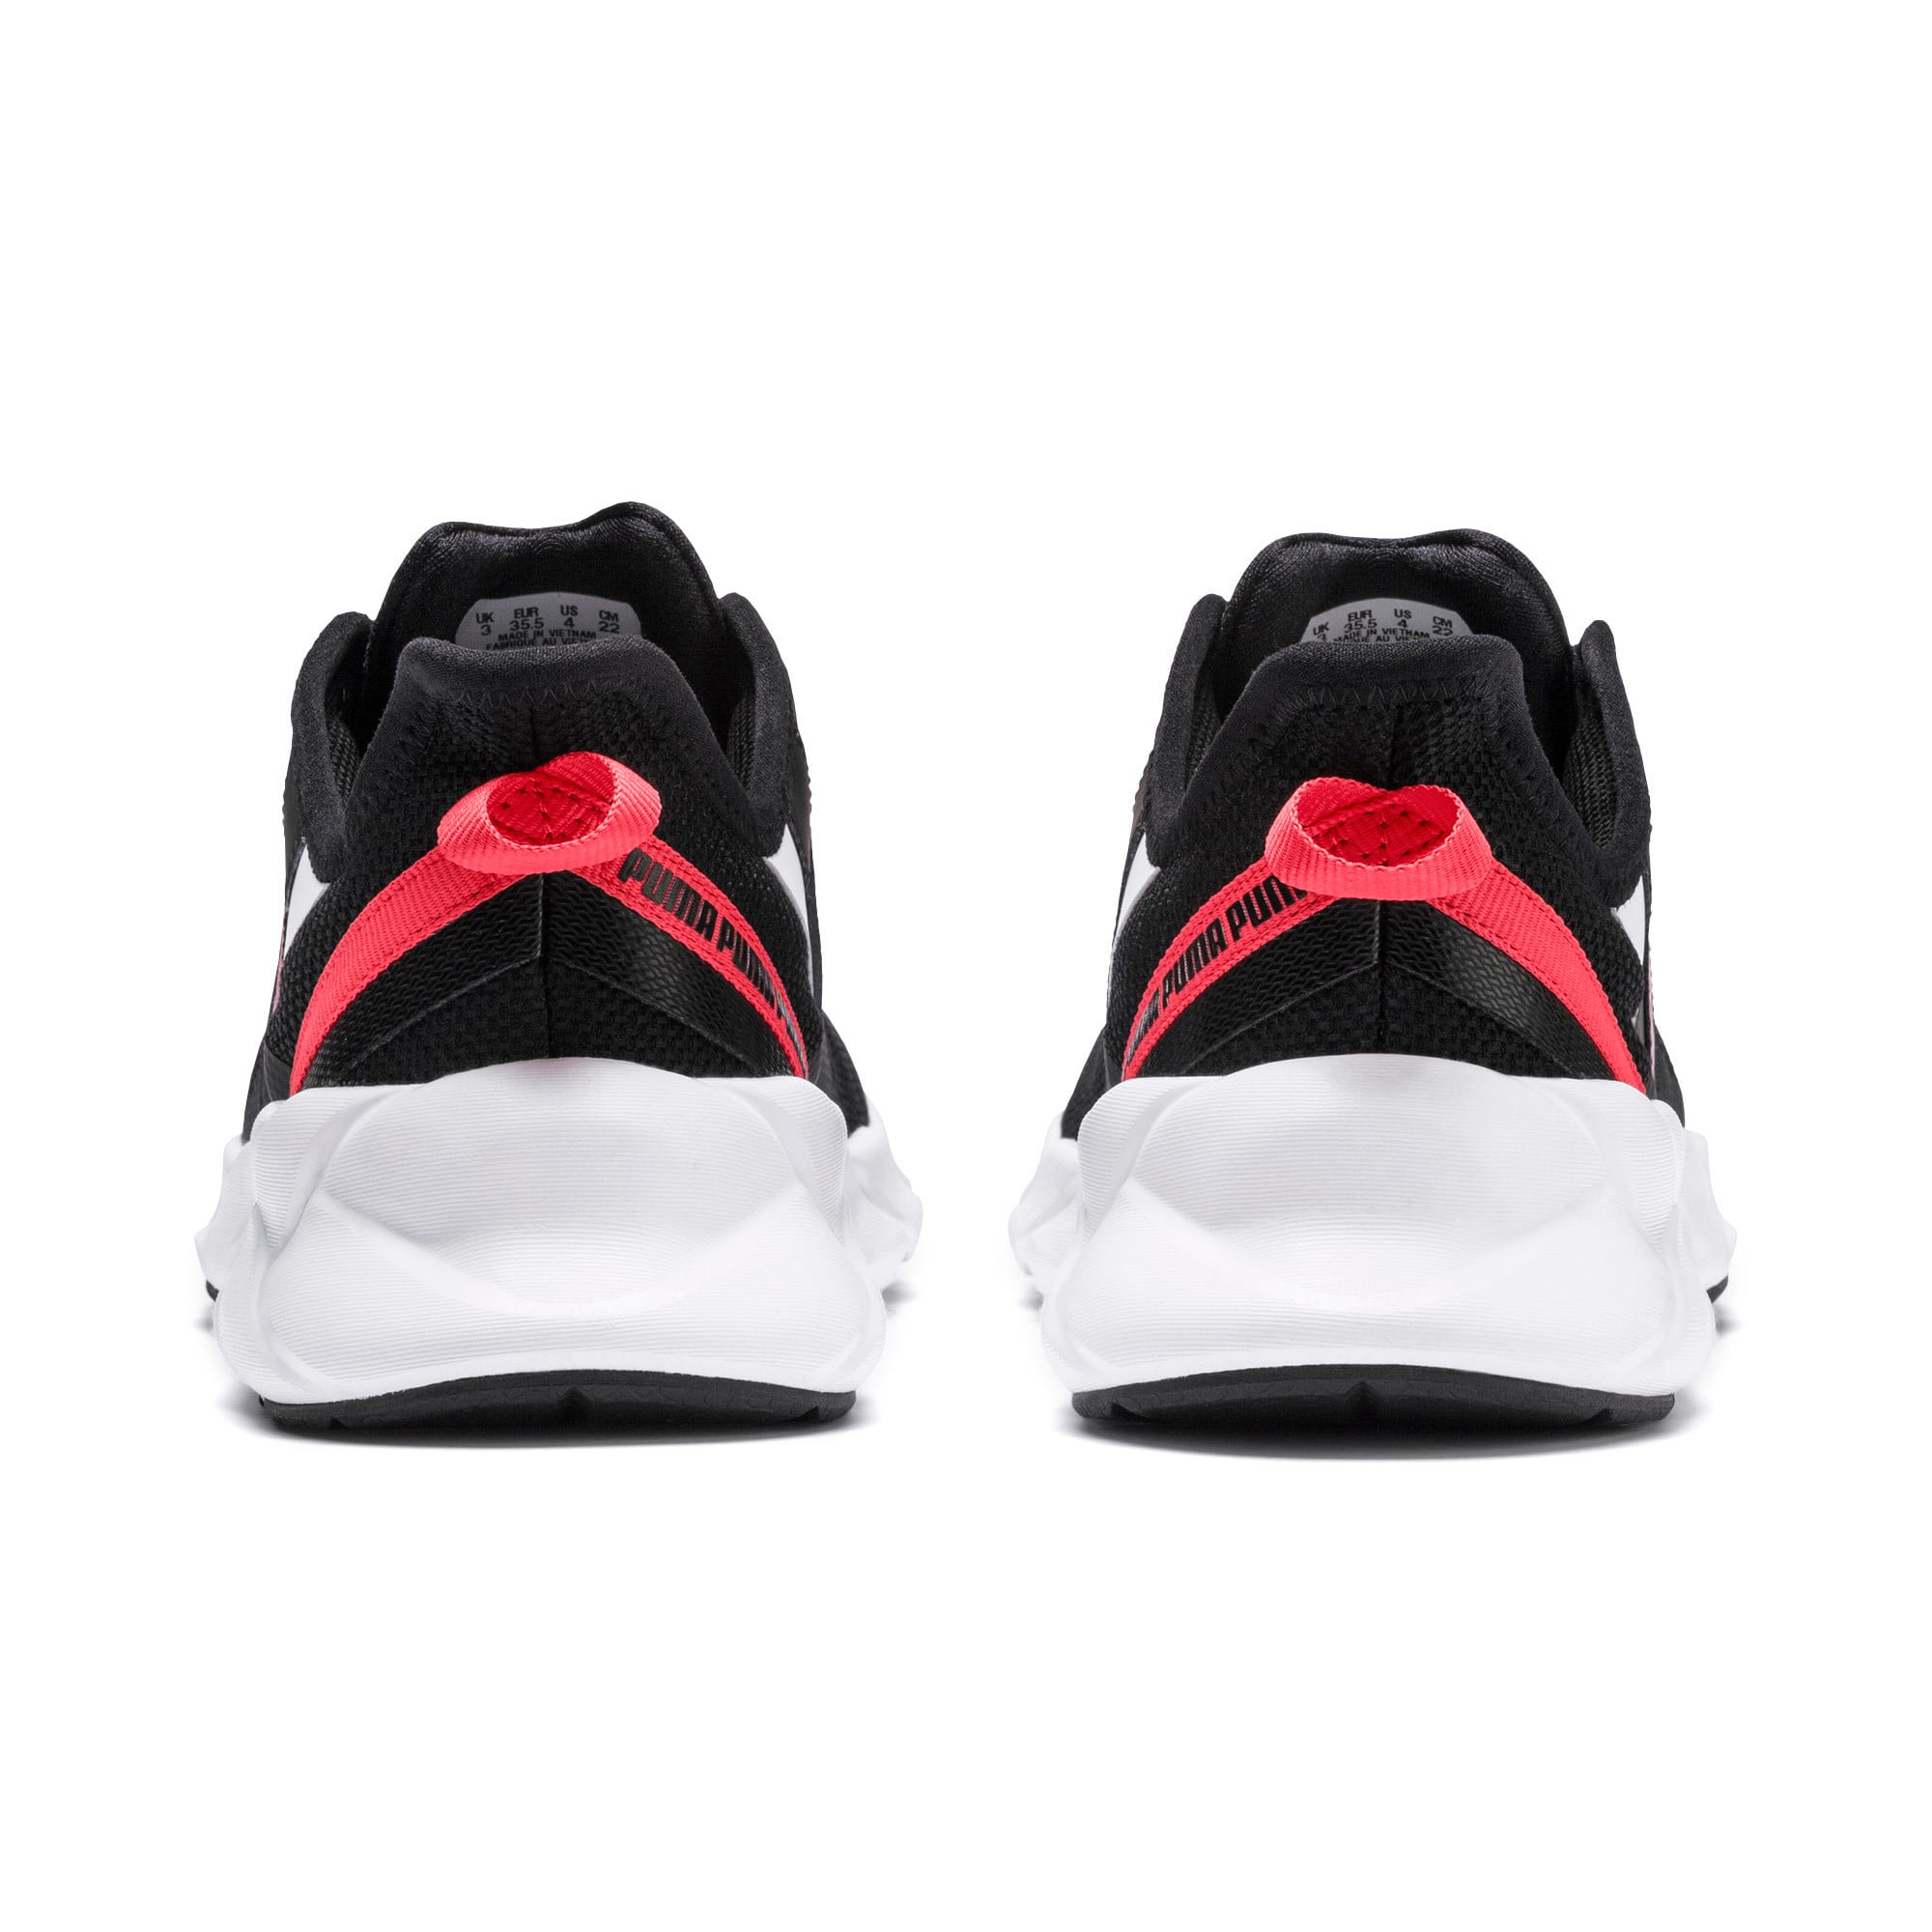 Thumbnail 3 of Weave XT Youth Trainers, Black-White-Calypso Coral, medium-IND